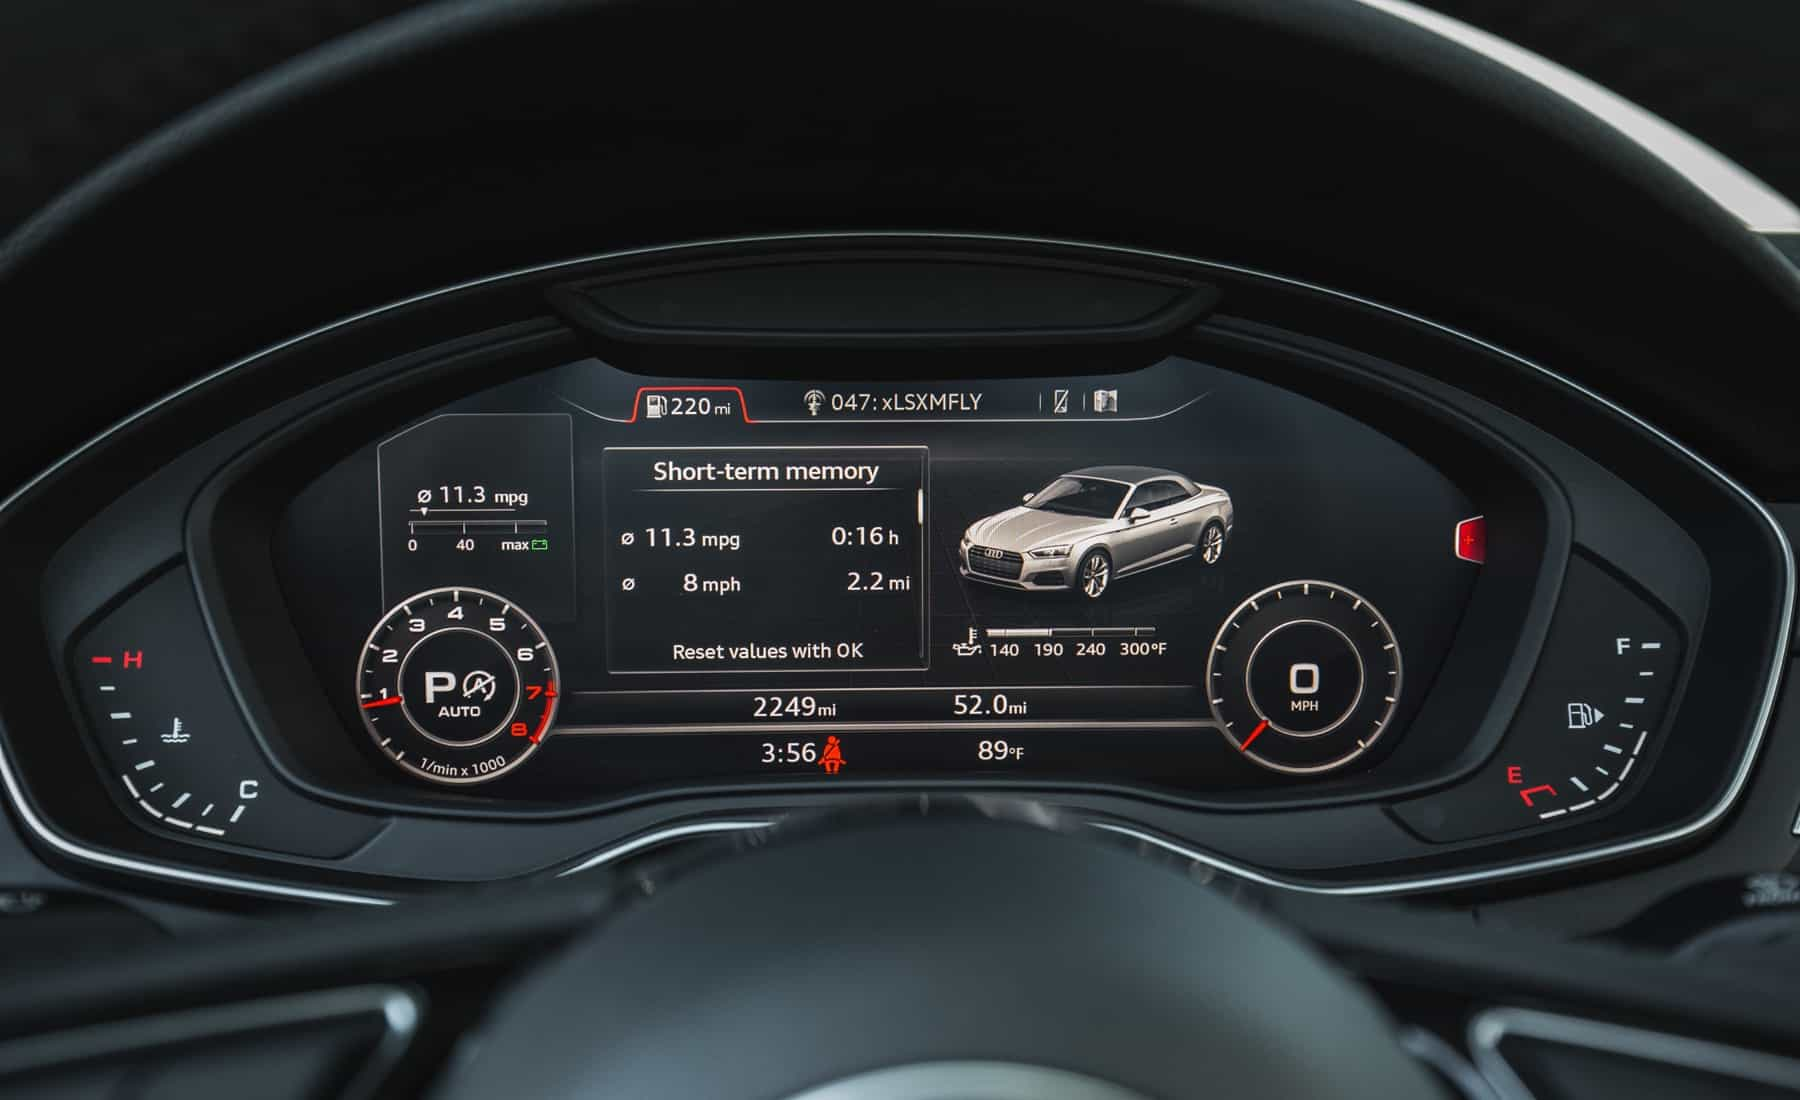 2018 Audi A5 Cabriolet Interior View Speedometer (Photo 34 of 45)